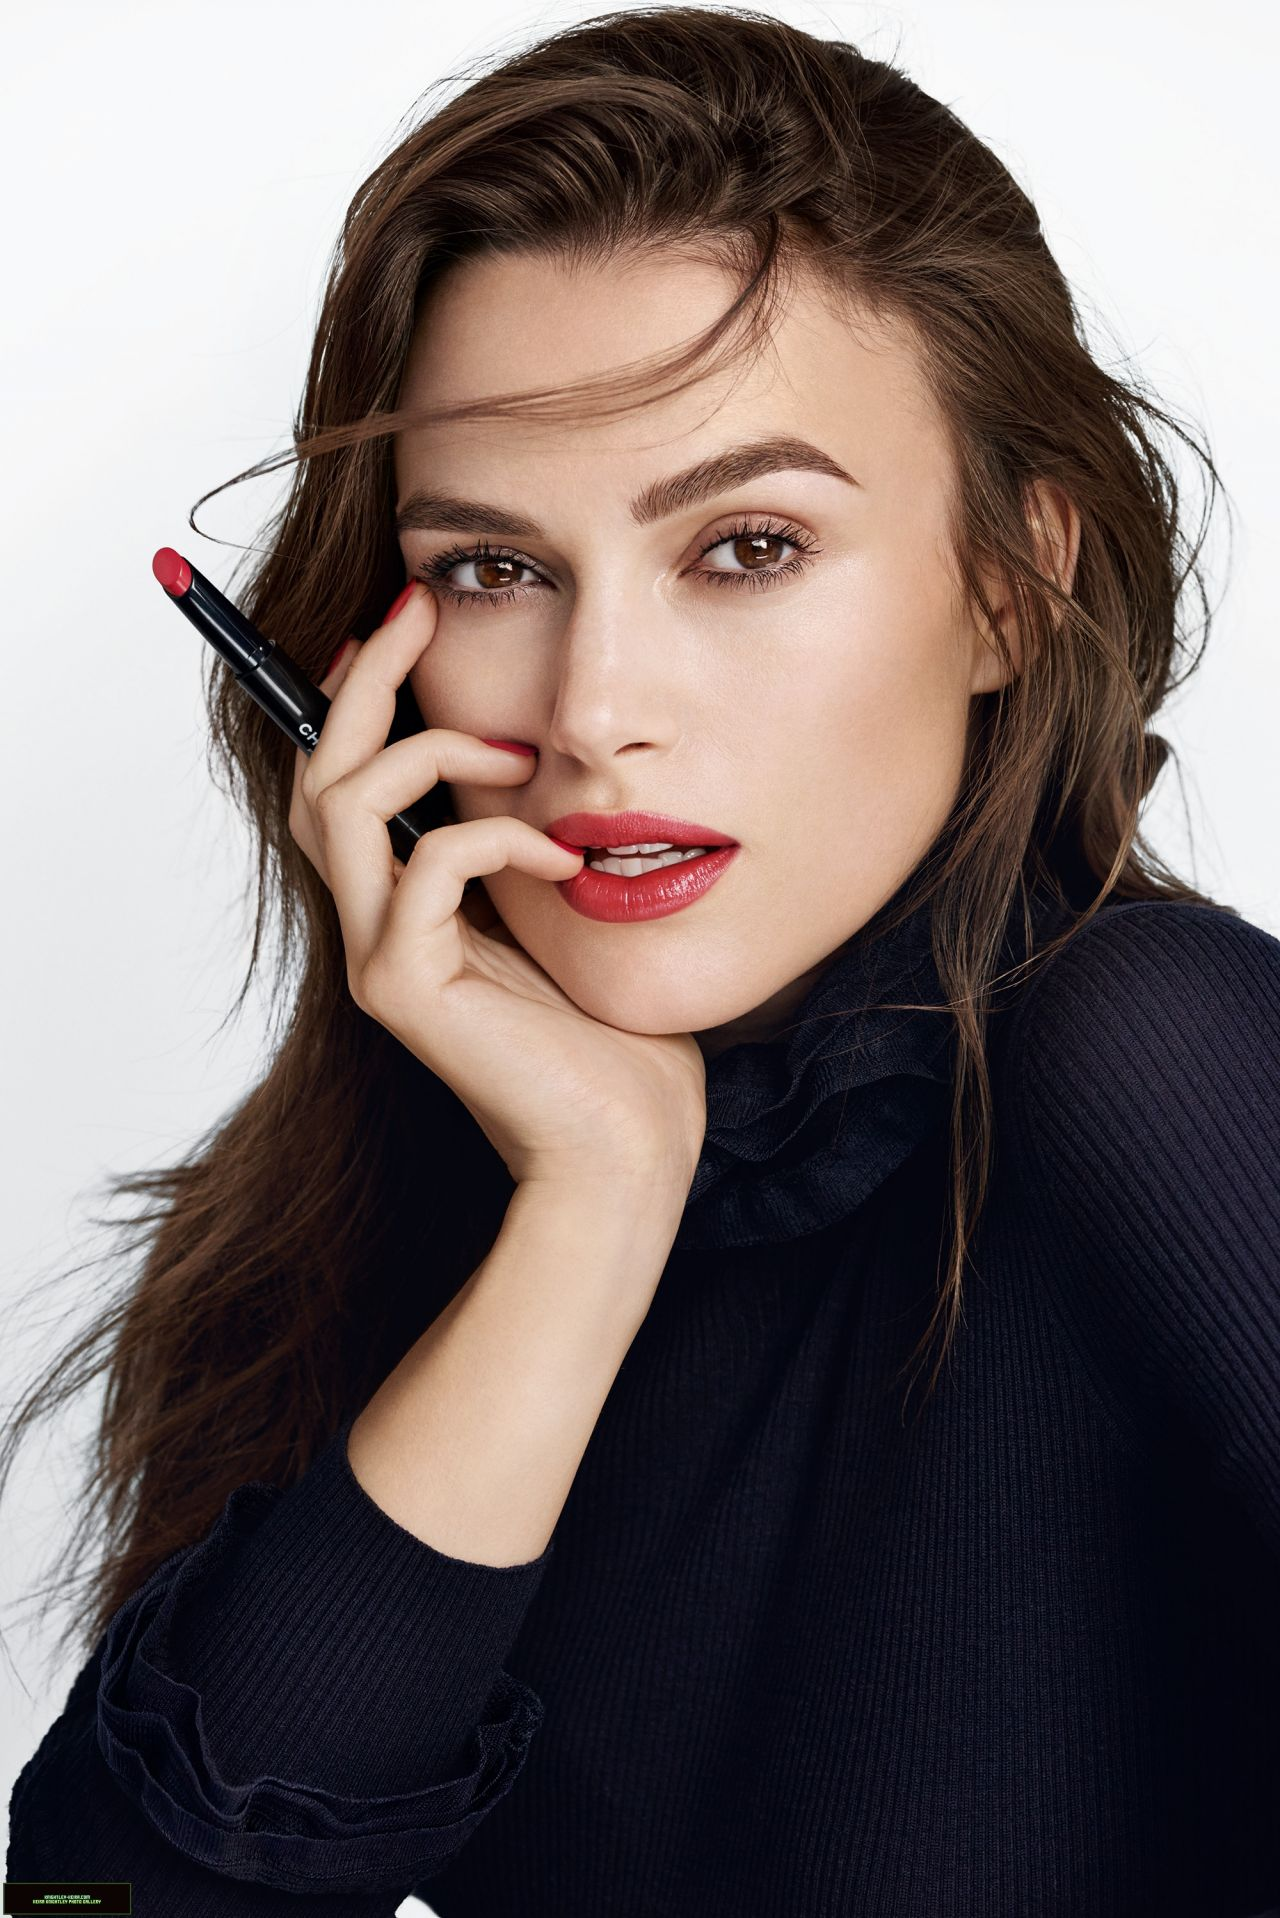 Keira Knightley - Chanel Rouge Coco Lipstick Photoshoot 2016 Keira Knightley